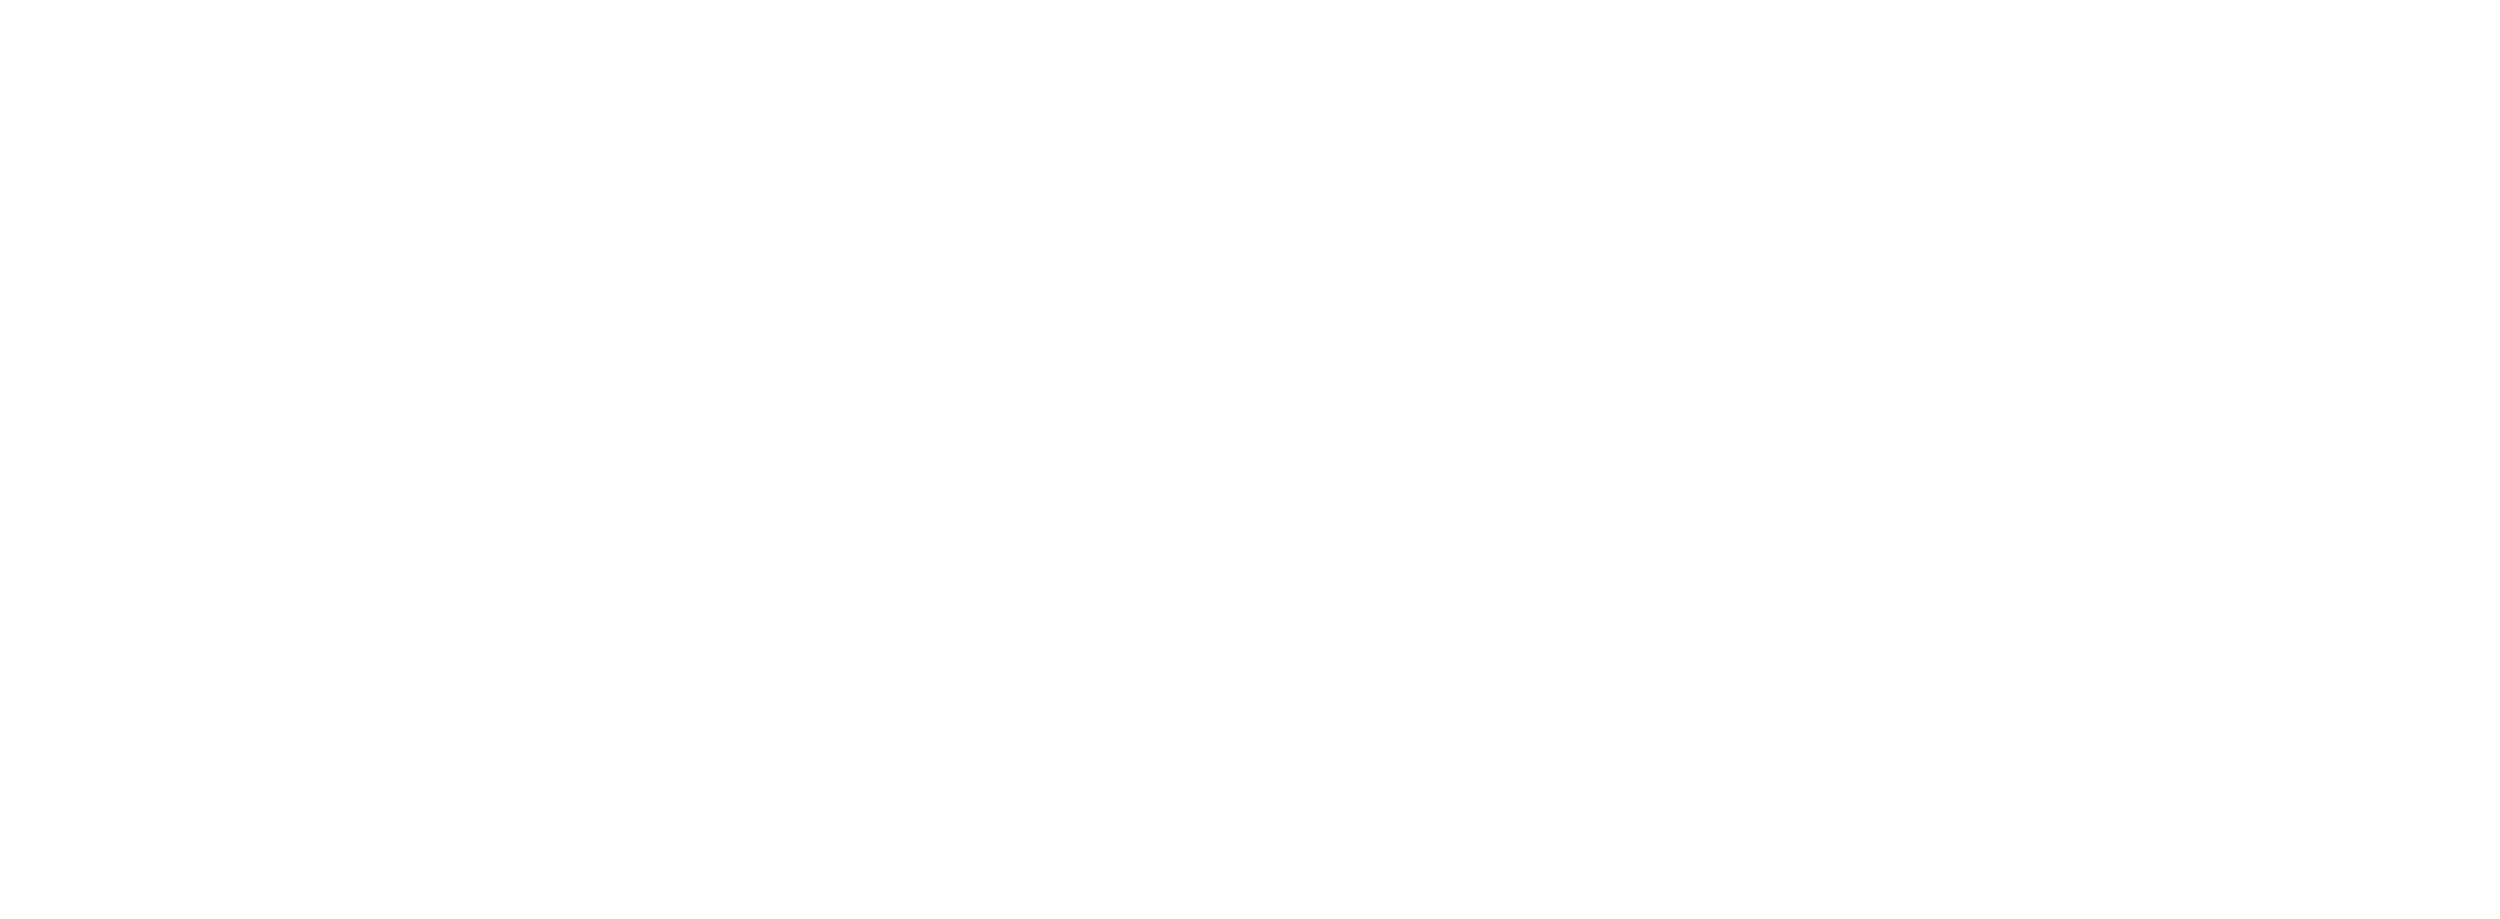 Village-Wine-logo-white-04.png